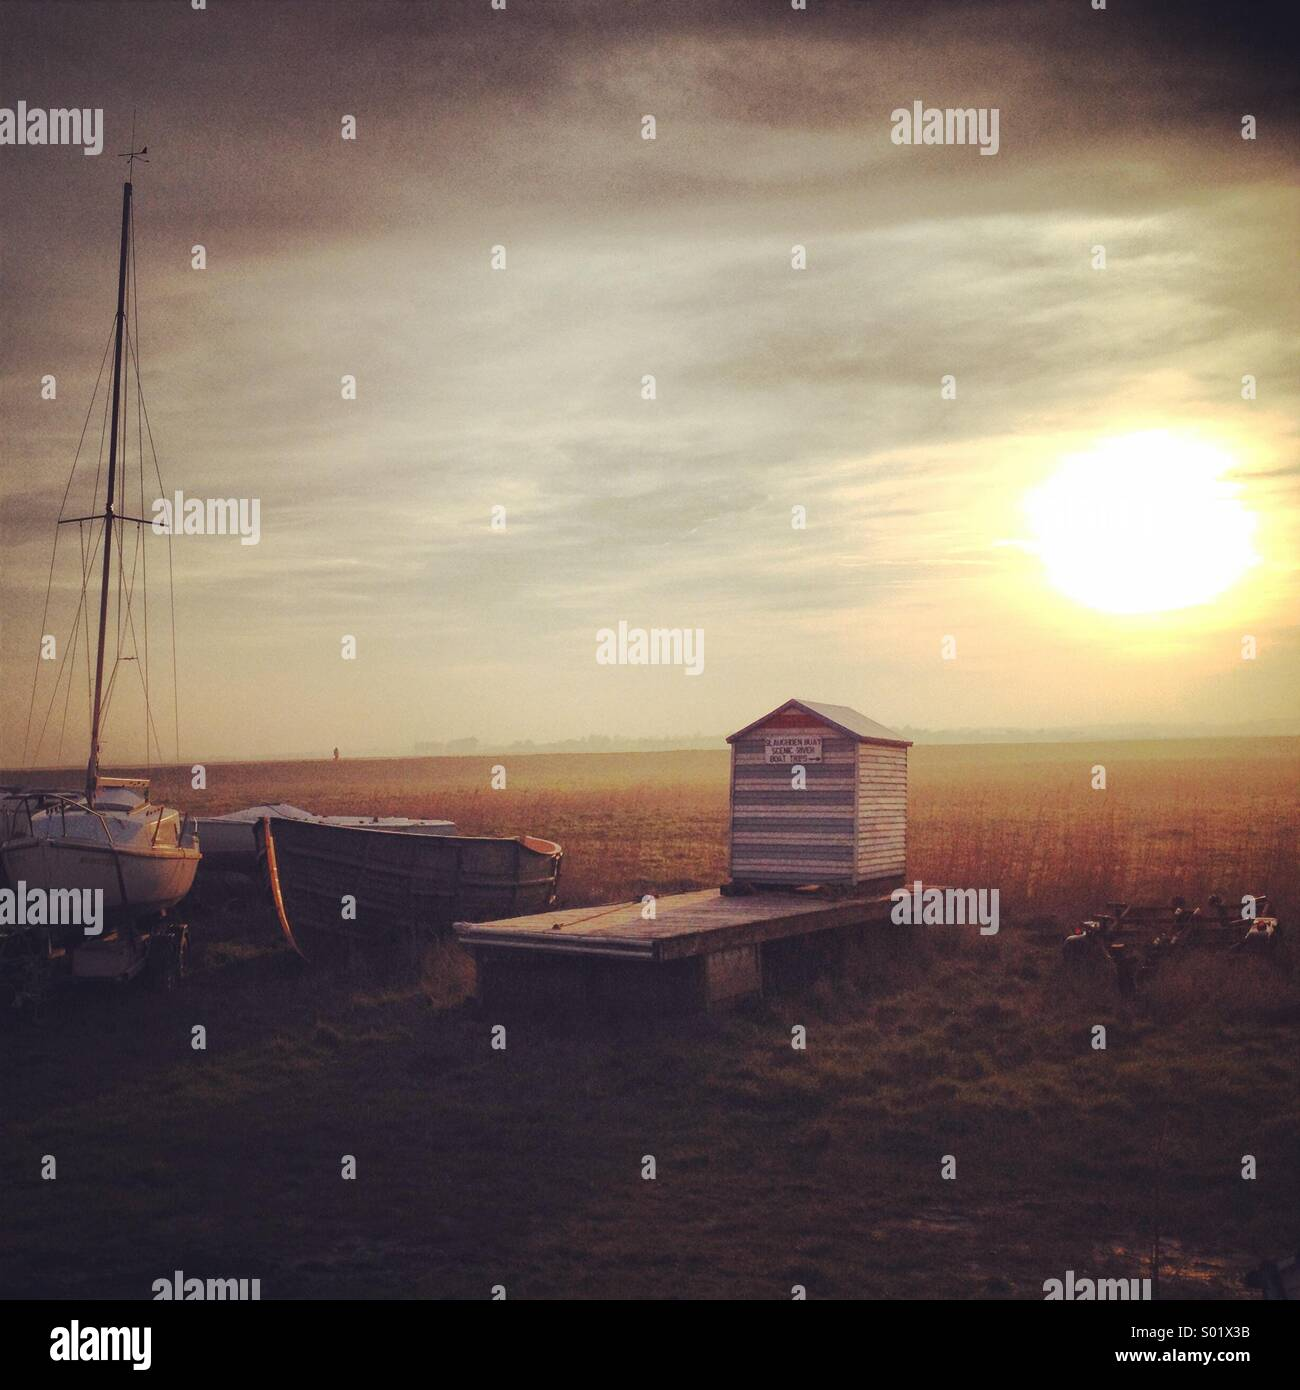 Sunset in Suffolk - Stock Image